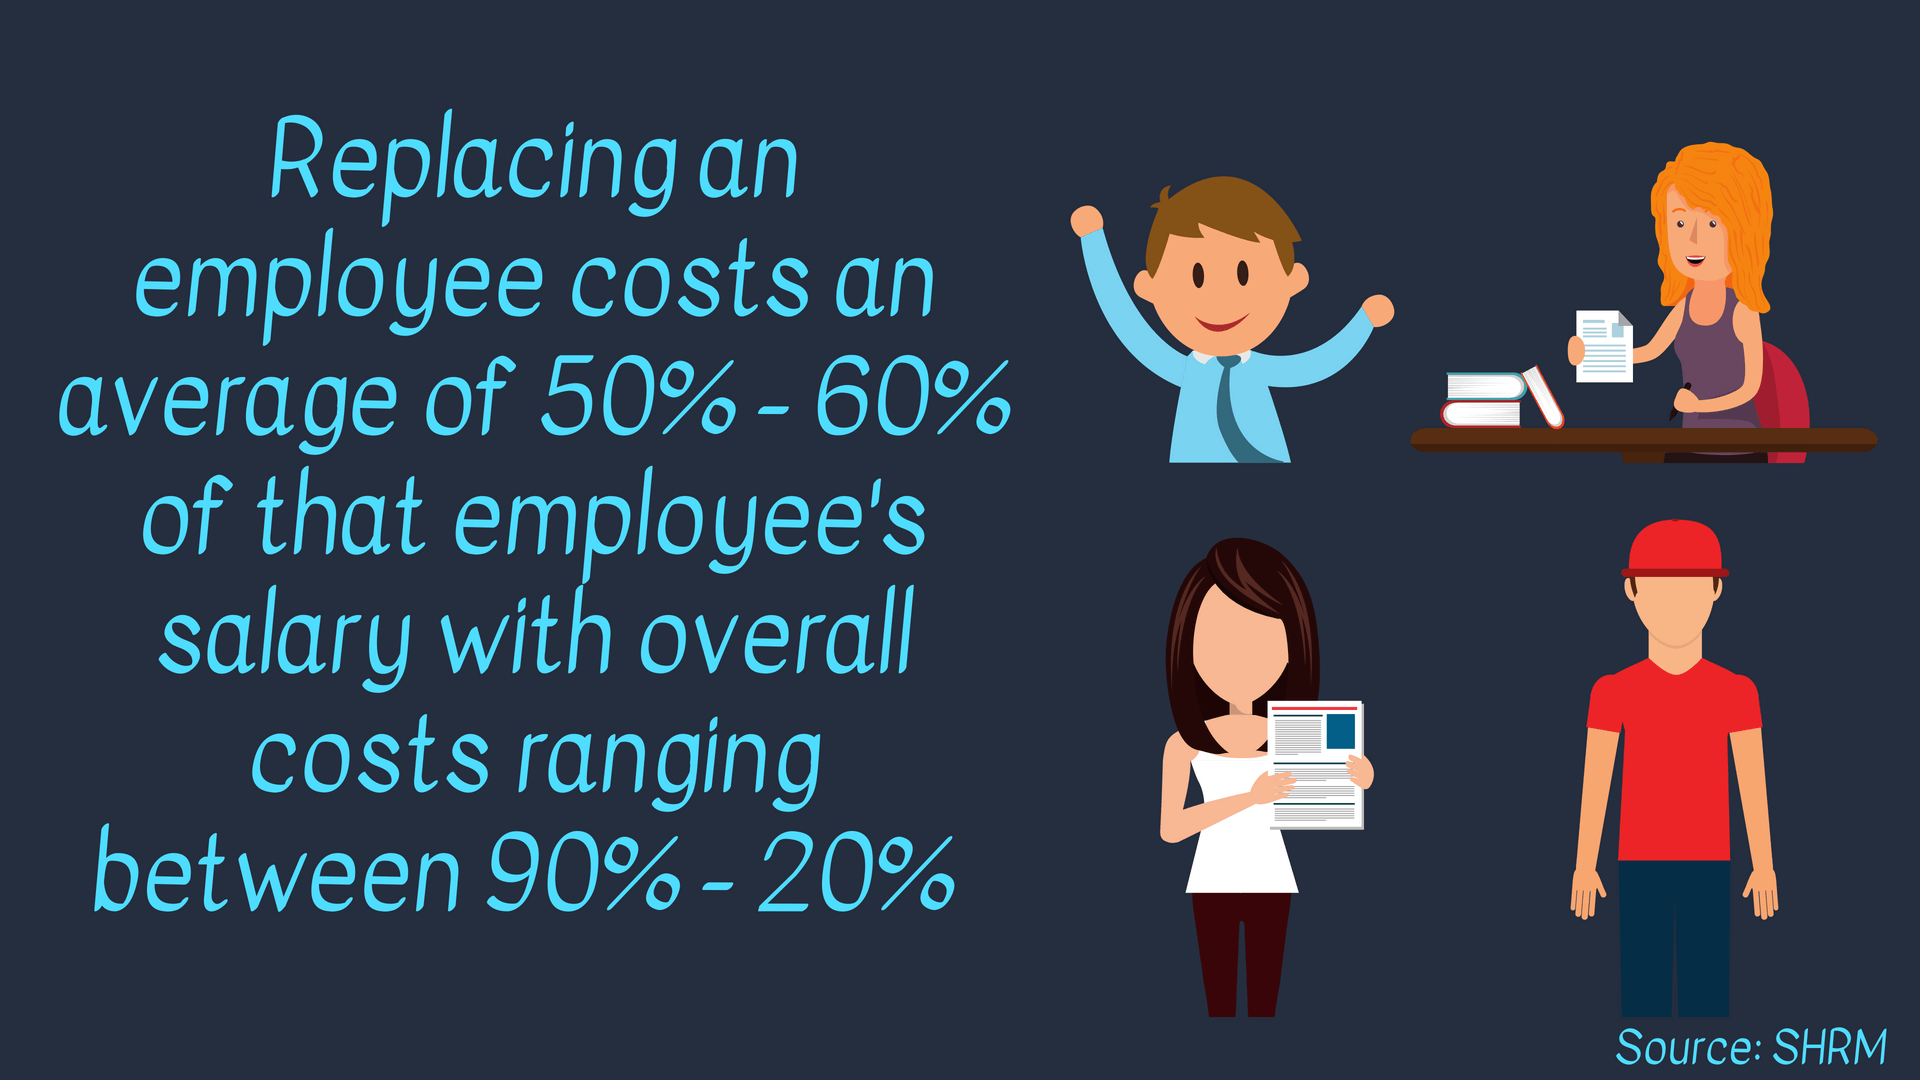 Replacing an employee costs an average of 50% - 60% of that employee's salary with overall costs ranging between 90% - 20% Info